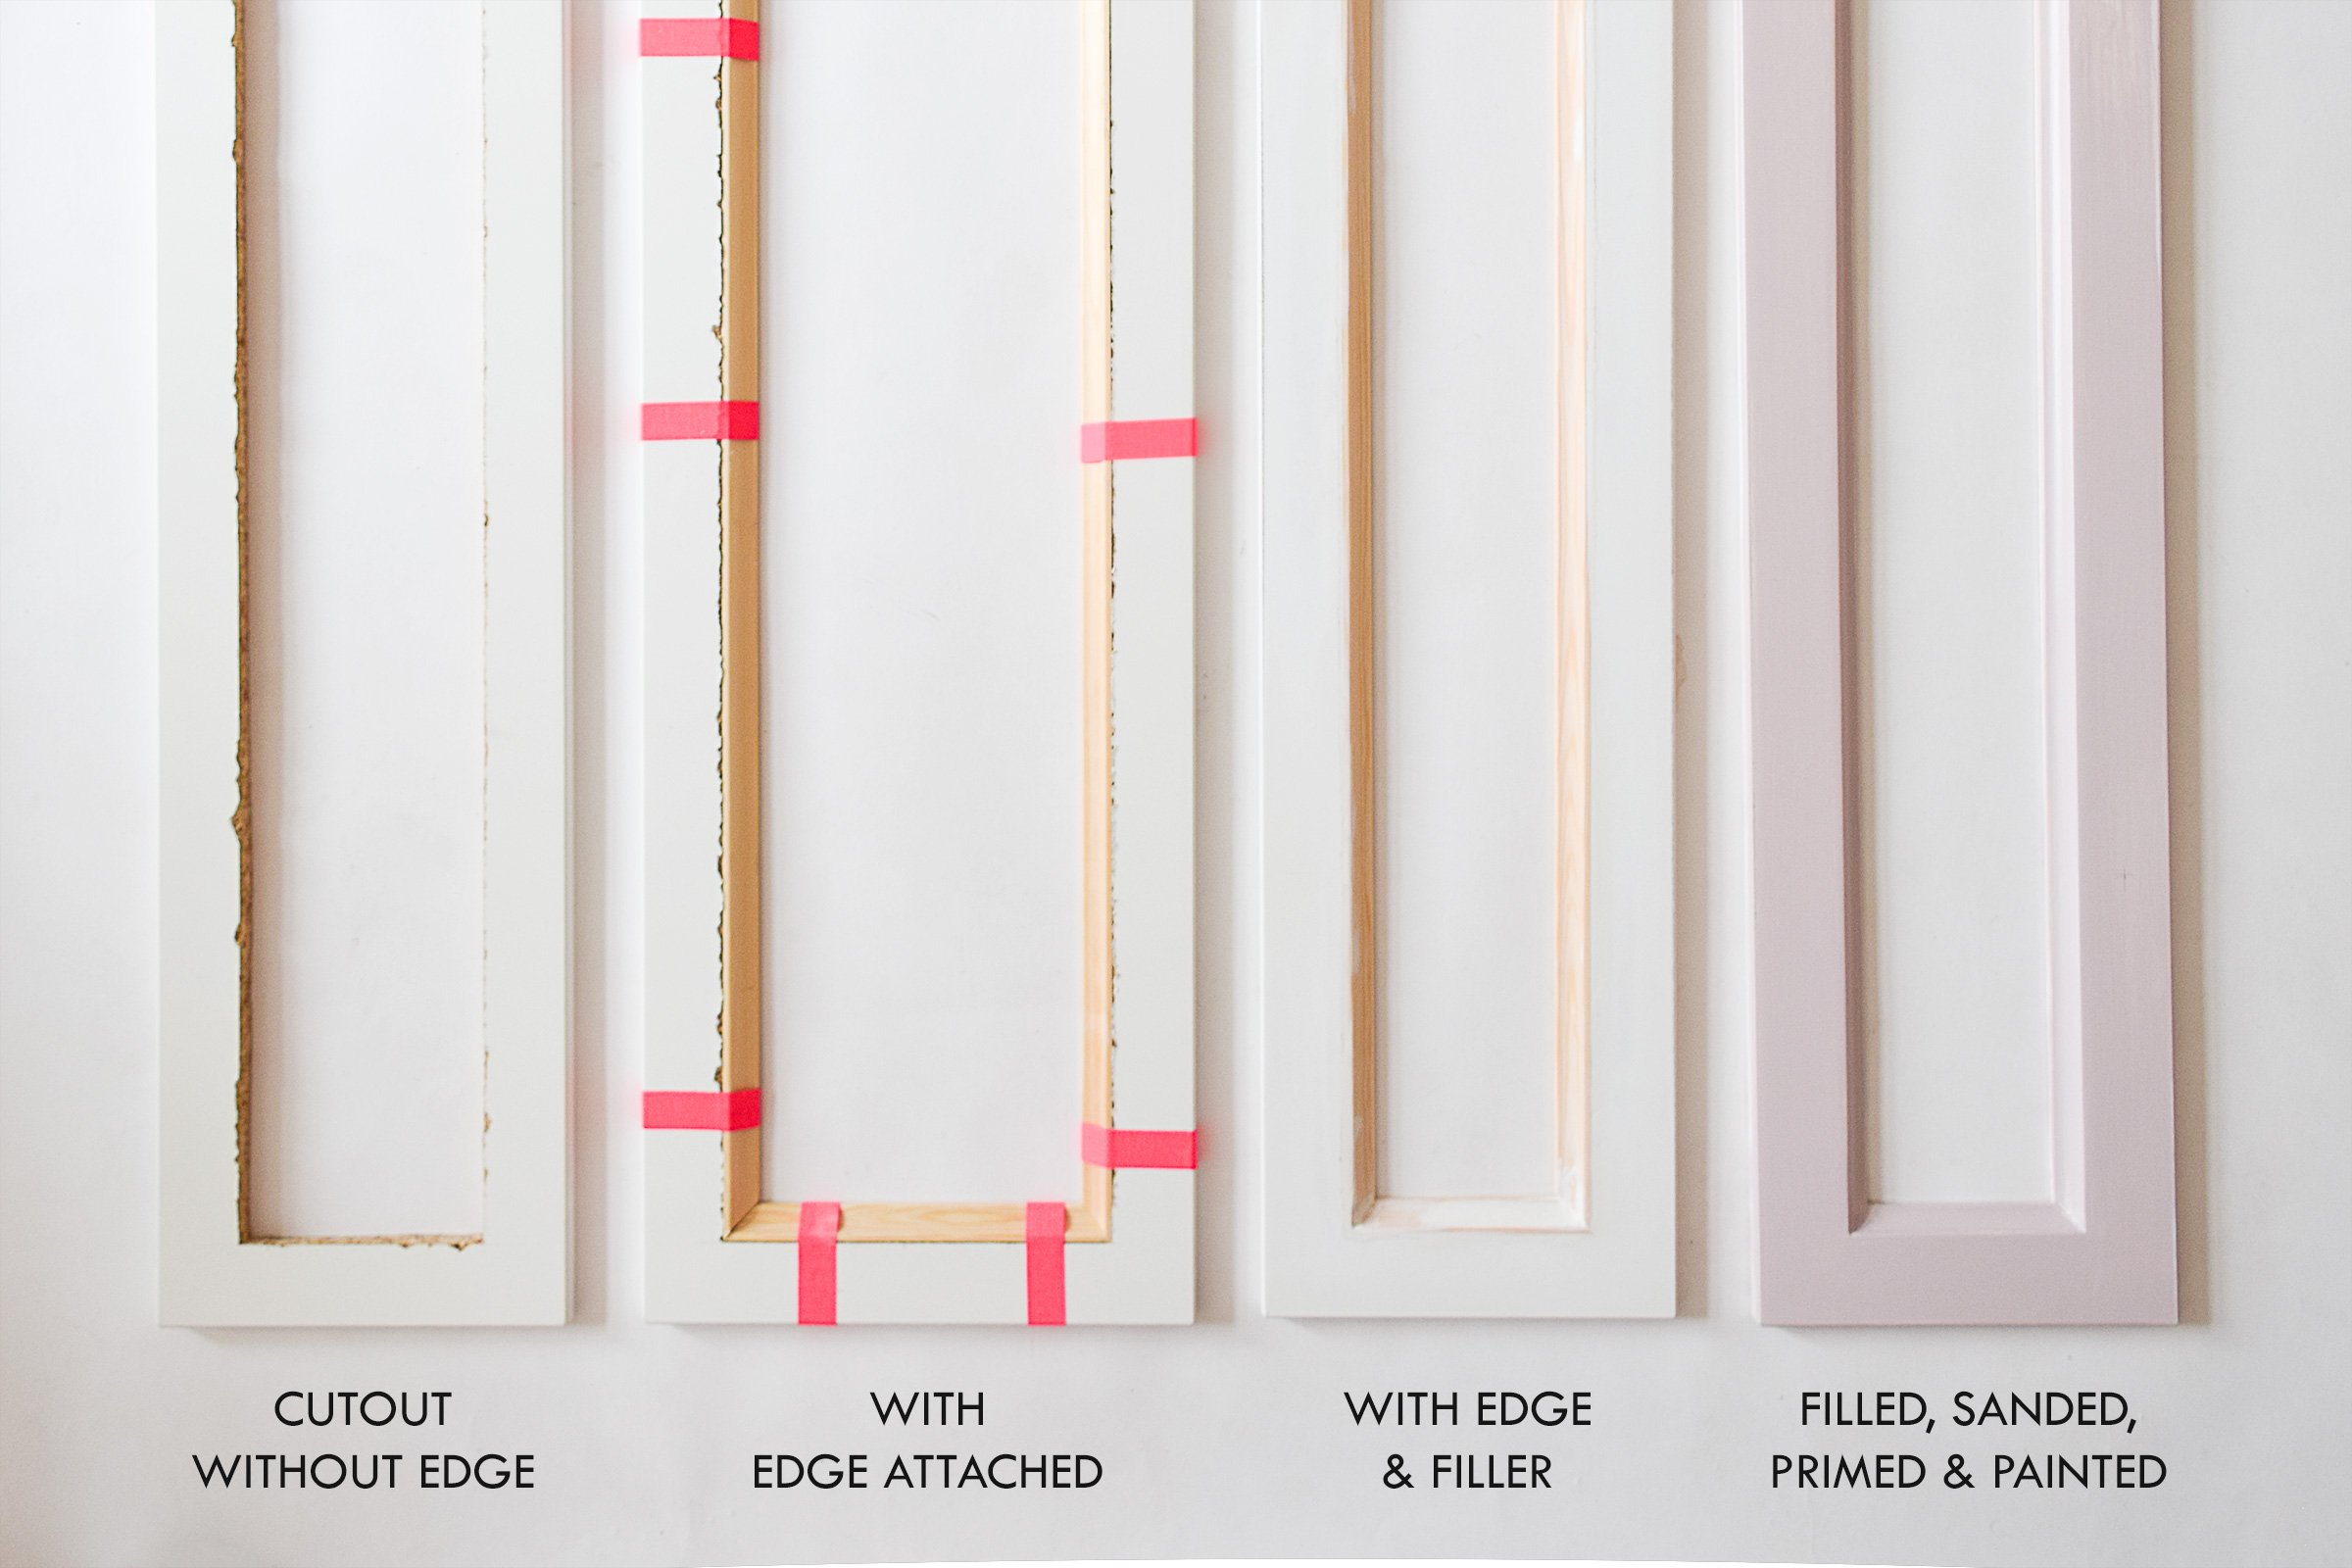 Ikea Hemnes Hack with Cane Webbing - Attach Edge | Little House On The Corner